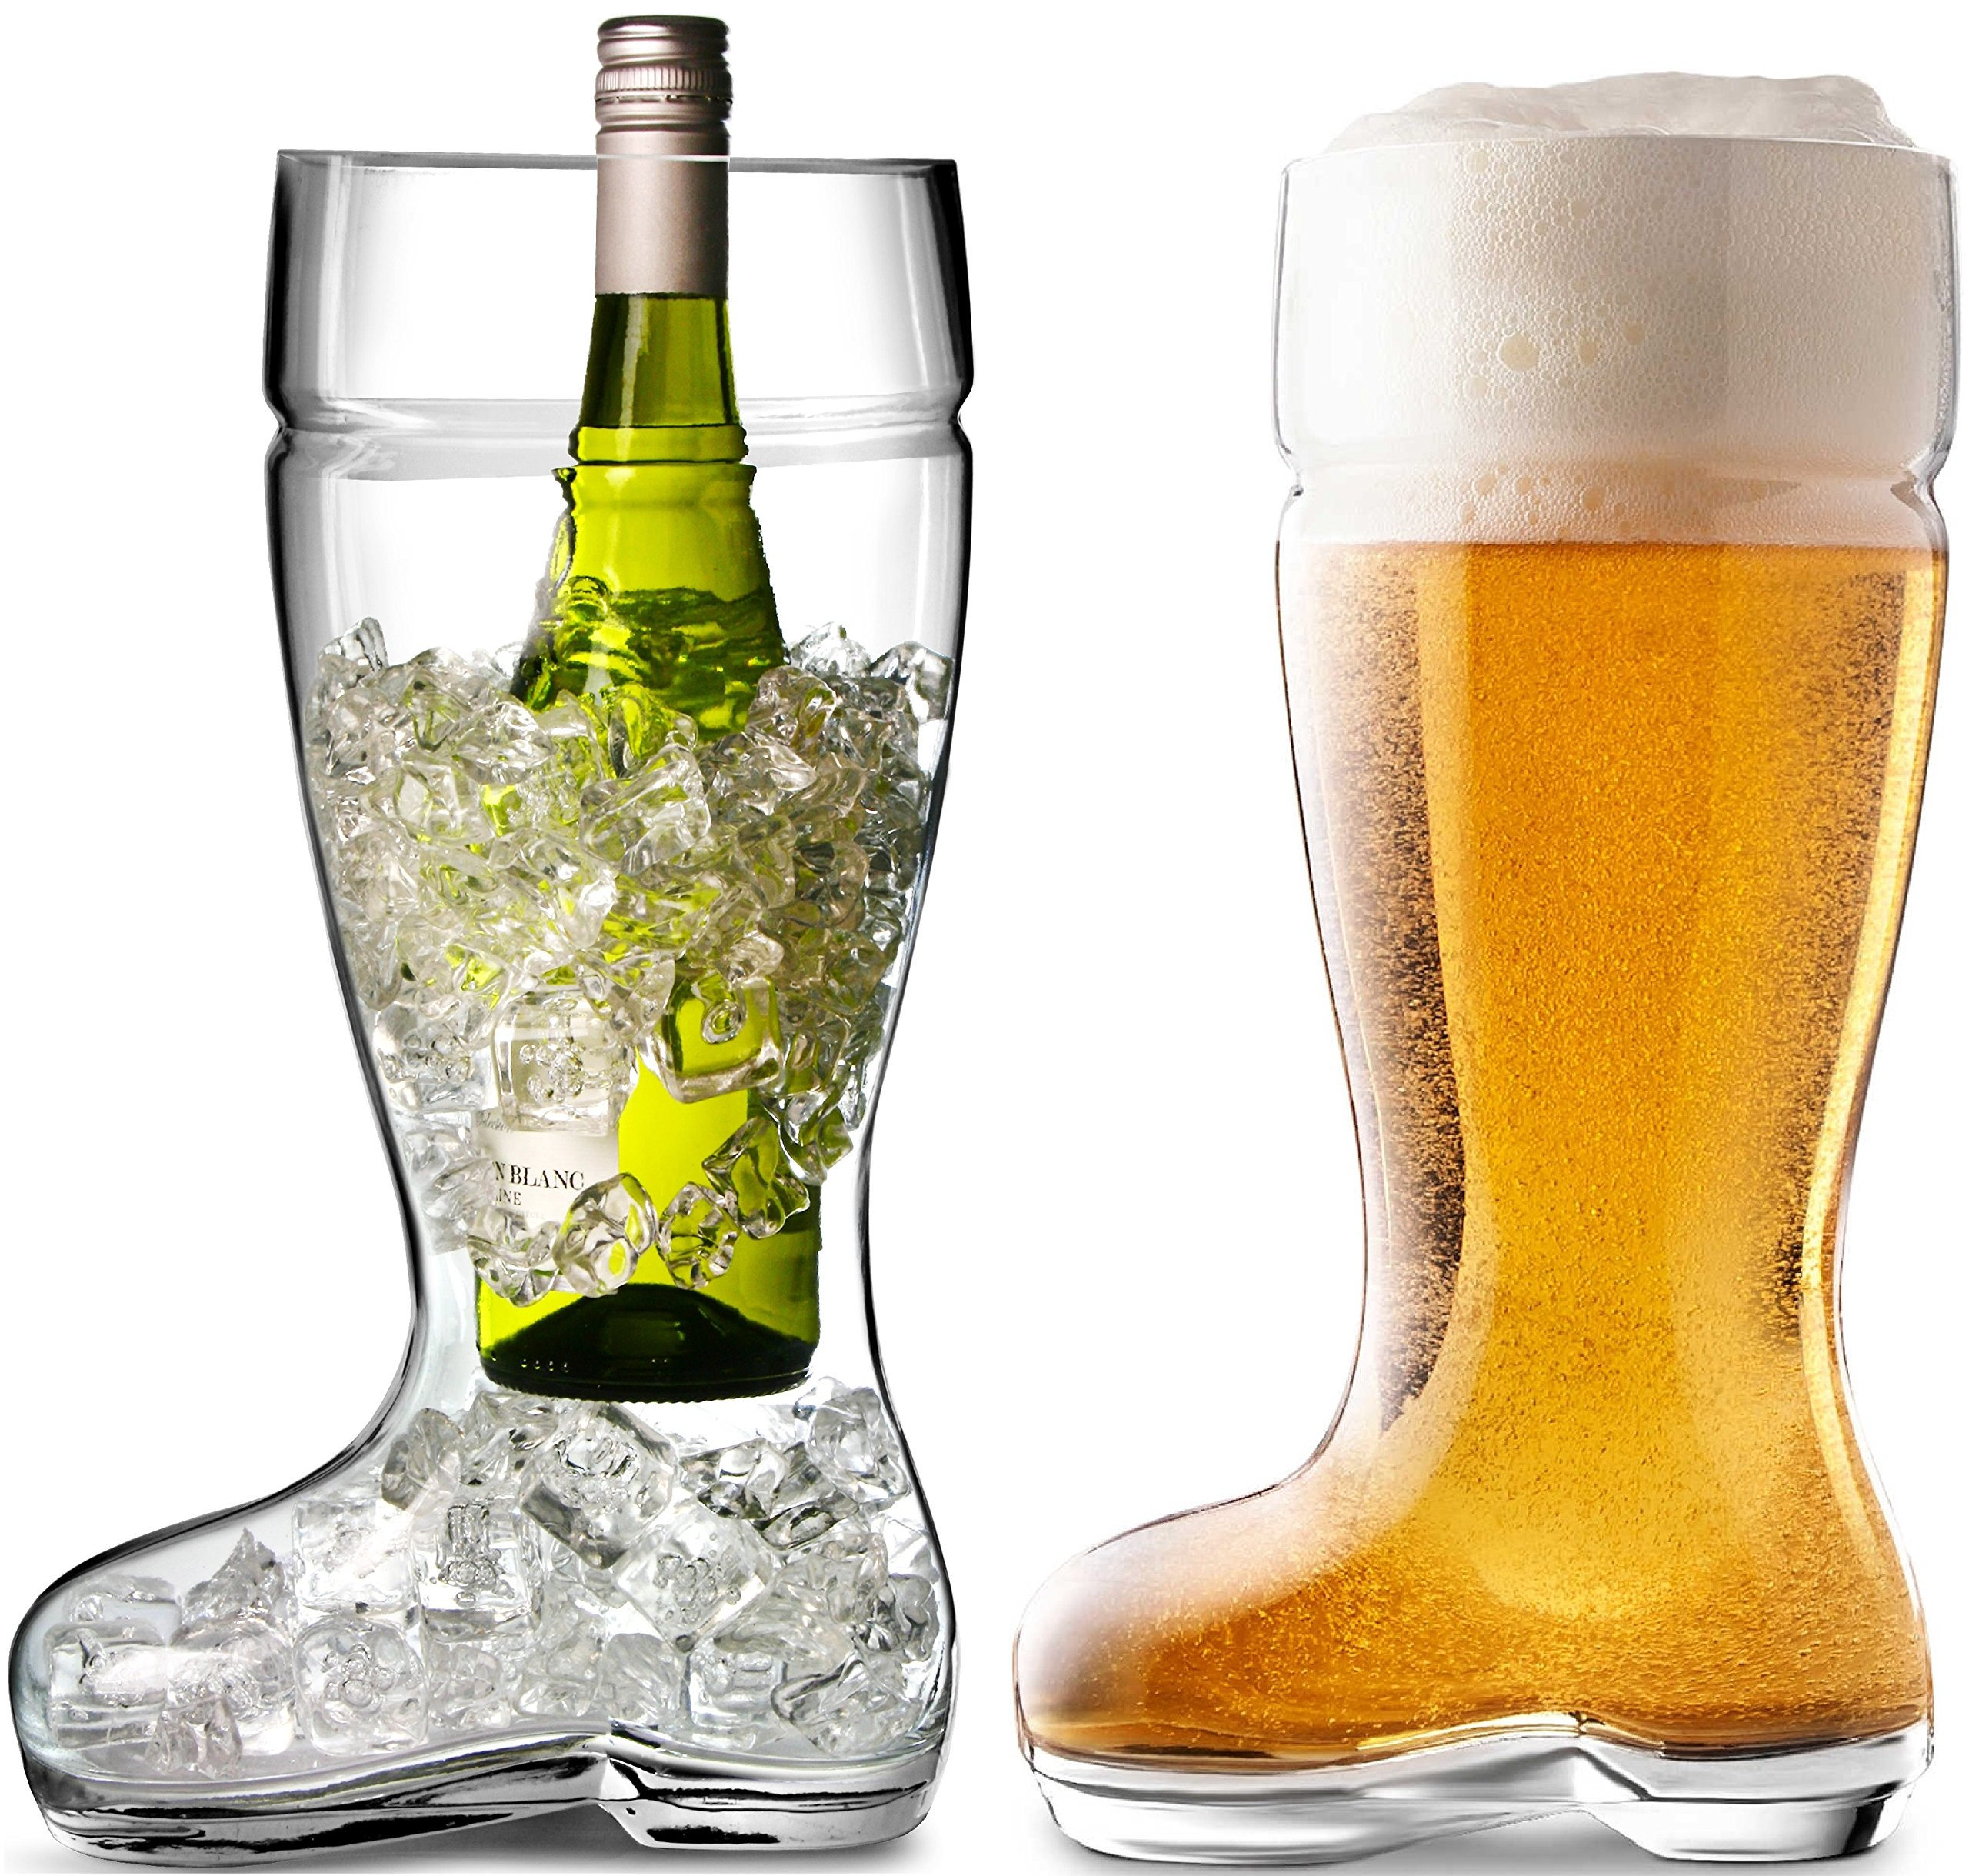 Circleware Das Boot Glass Beer Glasses Drinking Mug, Funny Shaped Entertainment Beverage Glassware for Water, Juice, Iced Tea, Liquor and Bar Barrel Liquor Dining Decor, 1 Boot, Large 1 Liter by Circleware (Image #5)